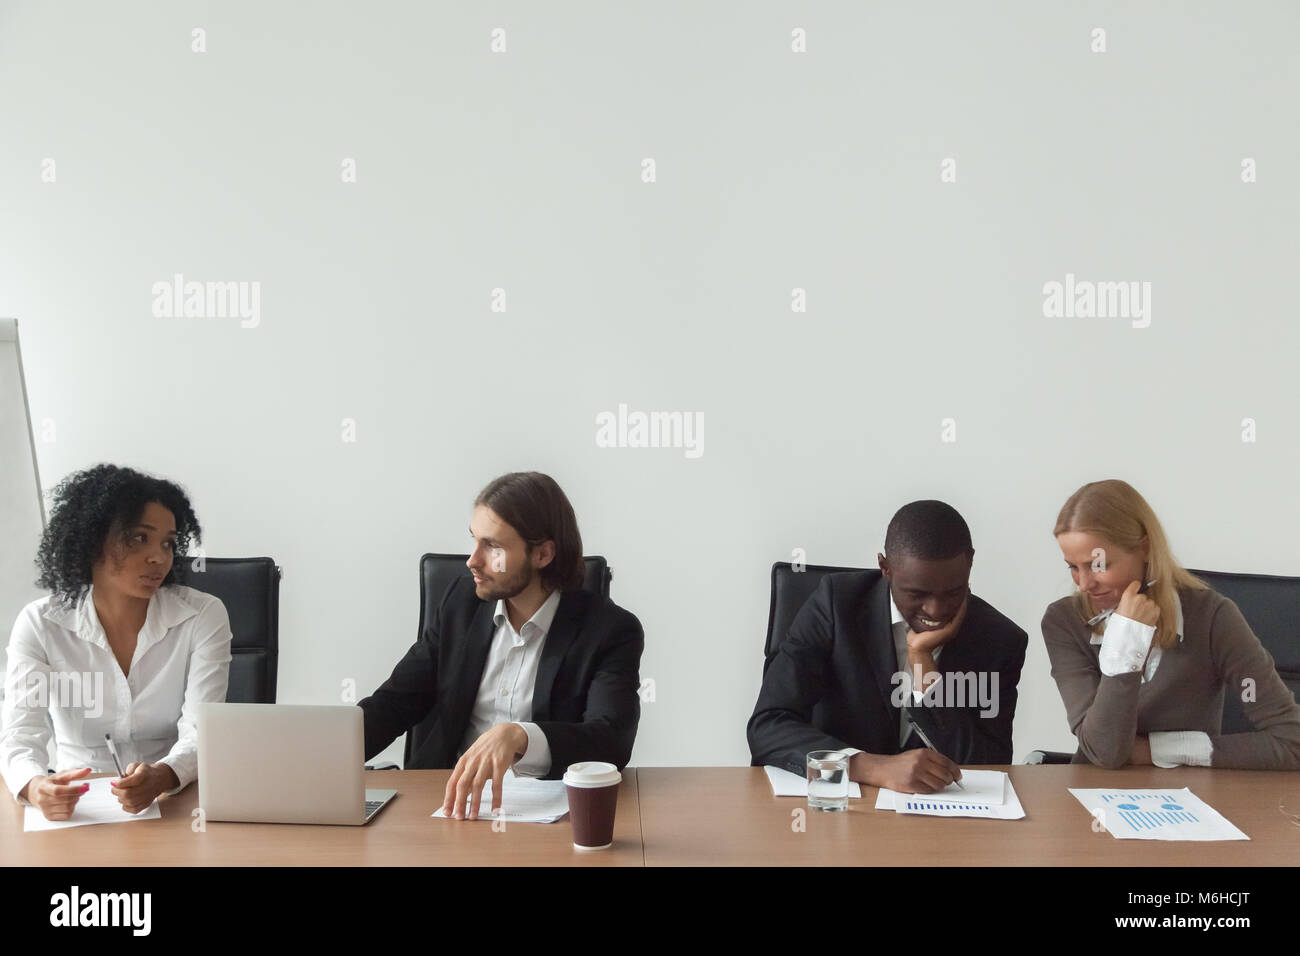 Diverse business people working talking at conference table, cor - Stock Image